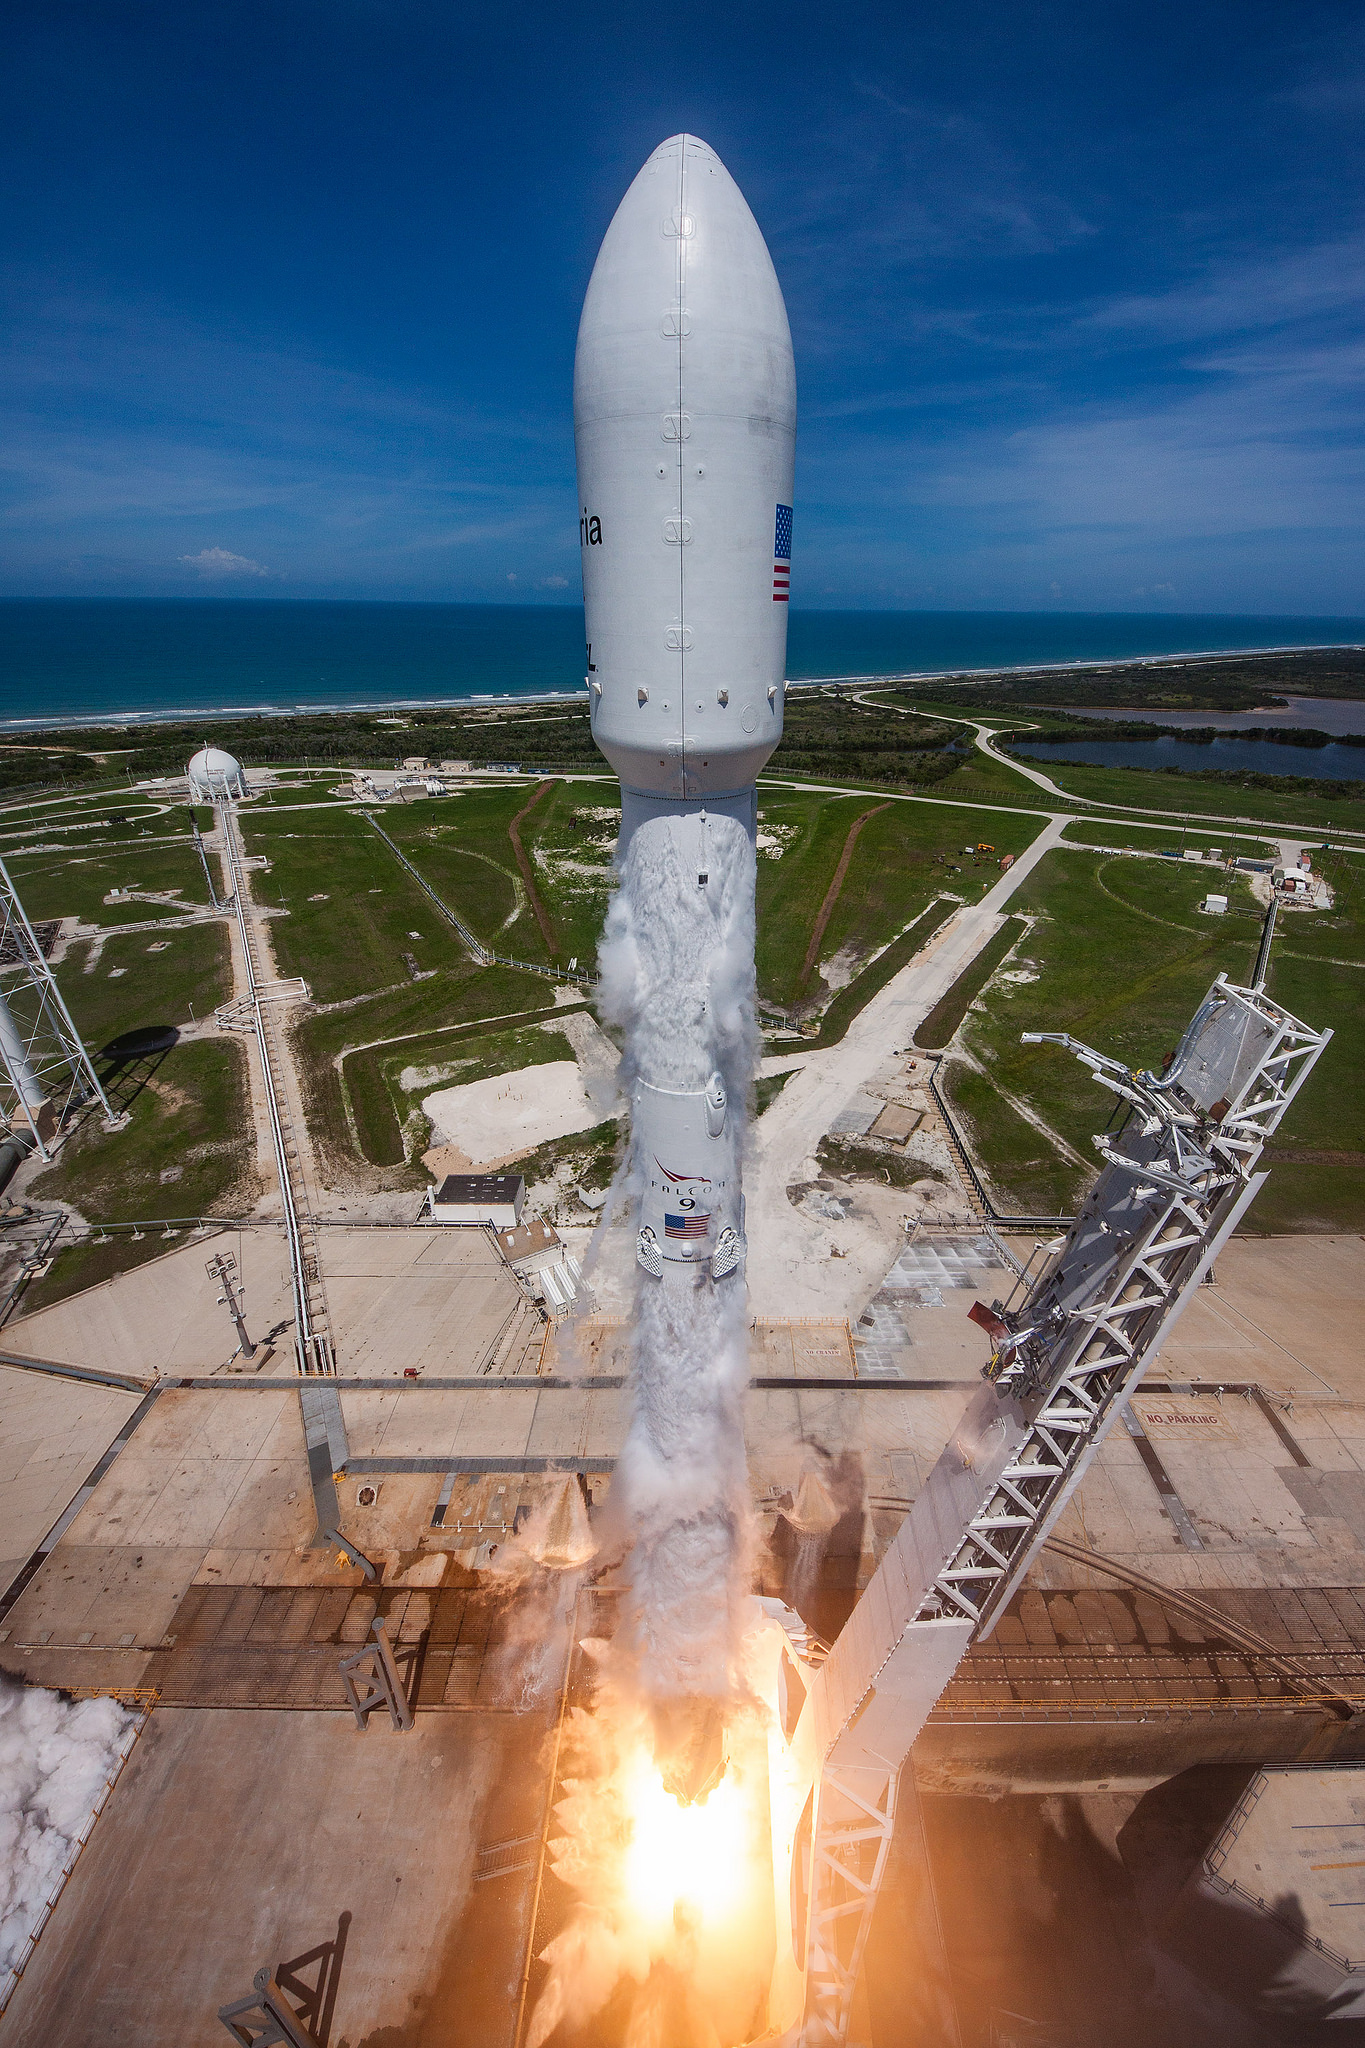 Nine Launches in and SpaceX is leaving Critics in the dust